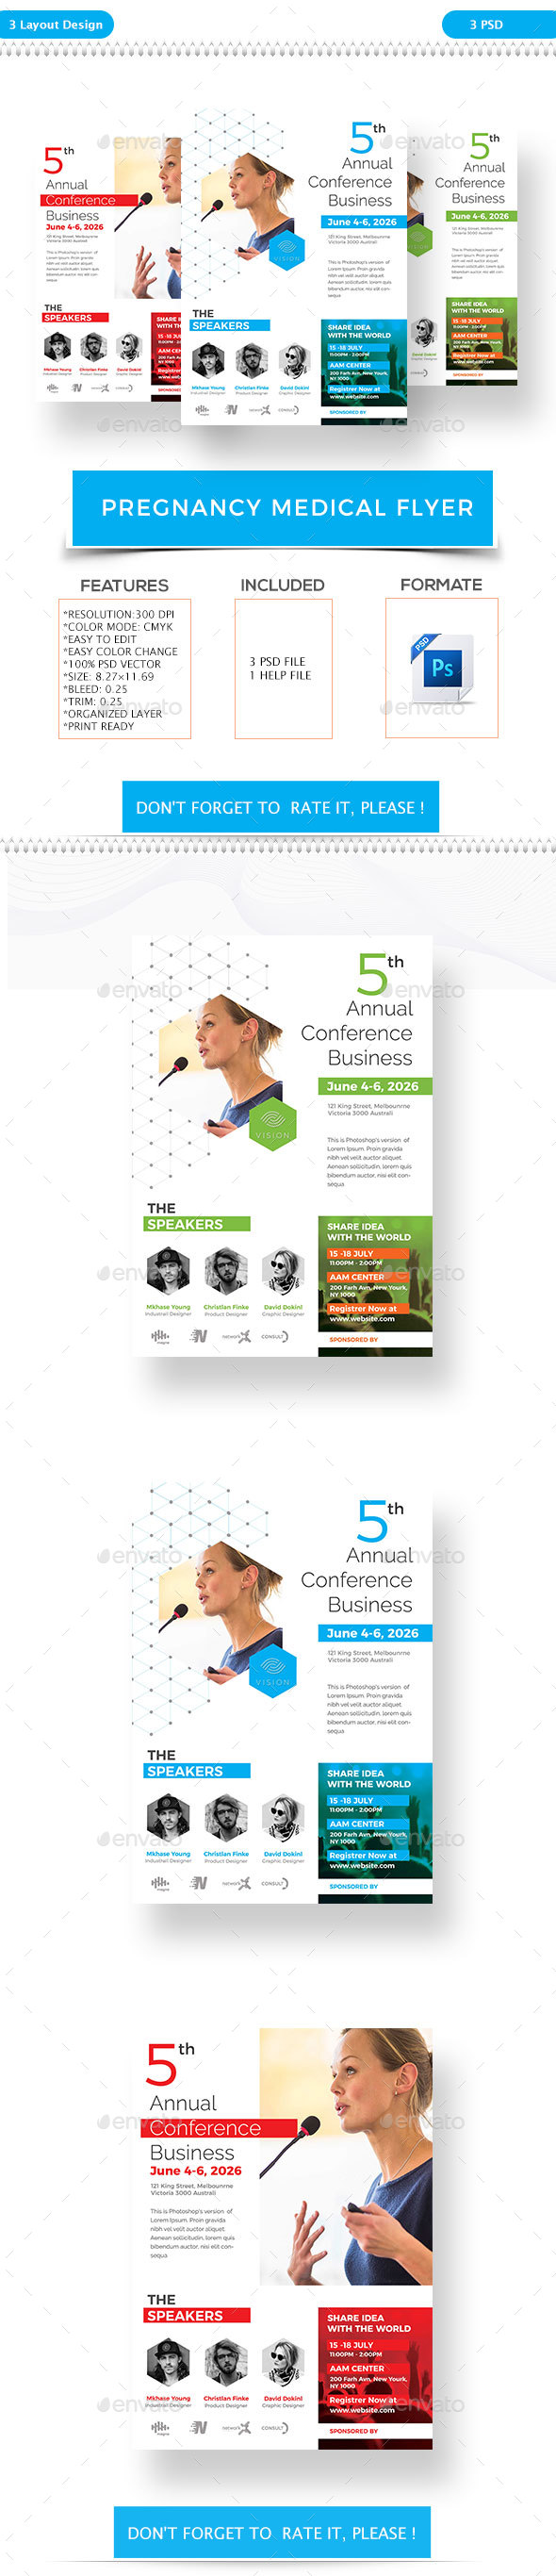 Event/Conference Flyer - Corporate Flyers